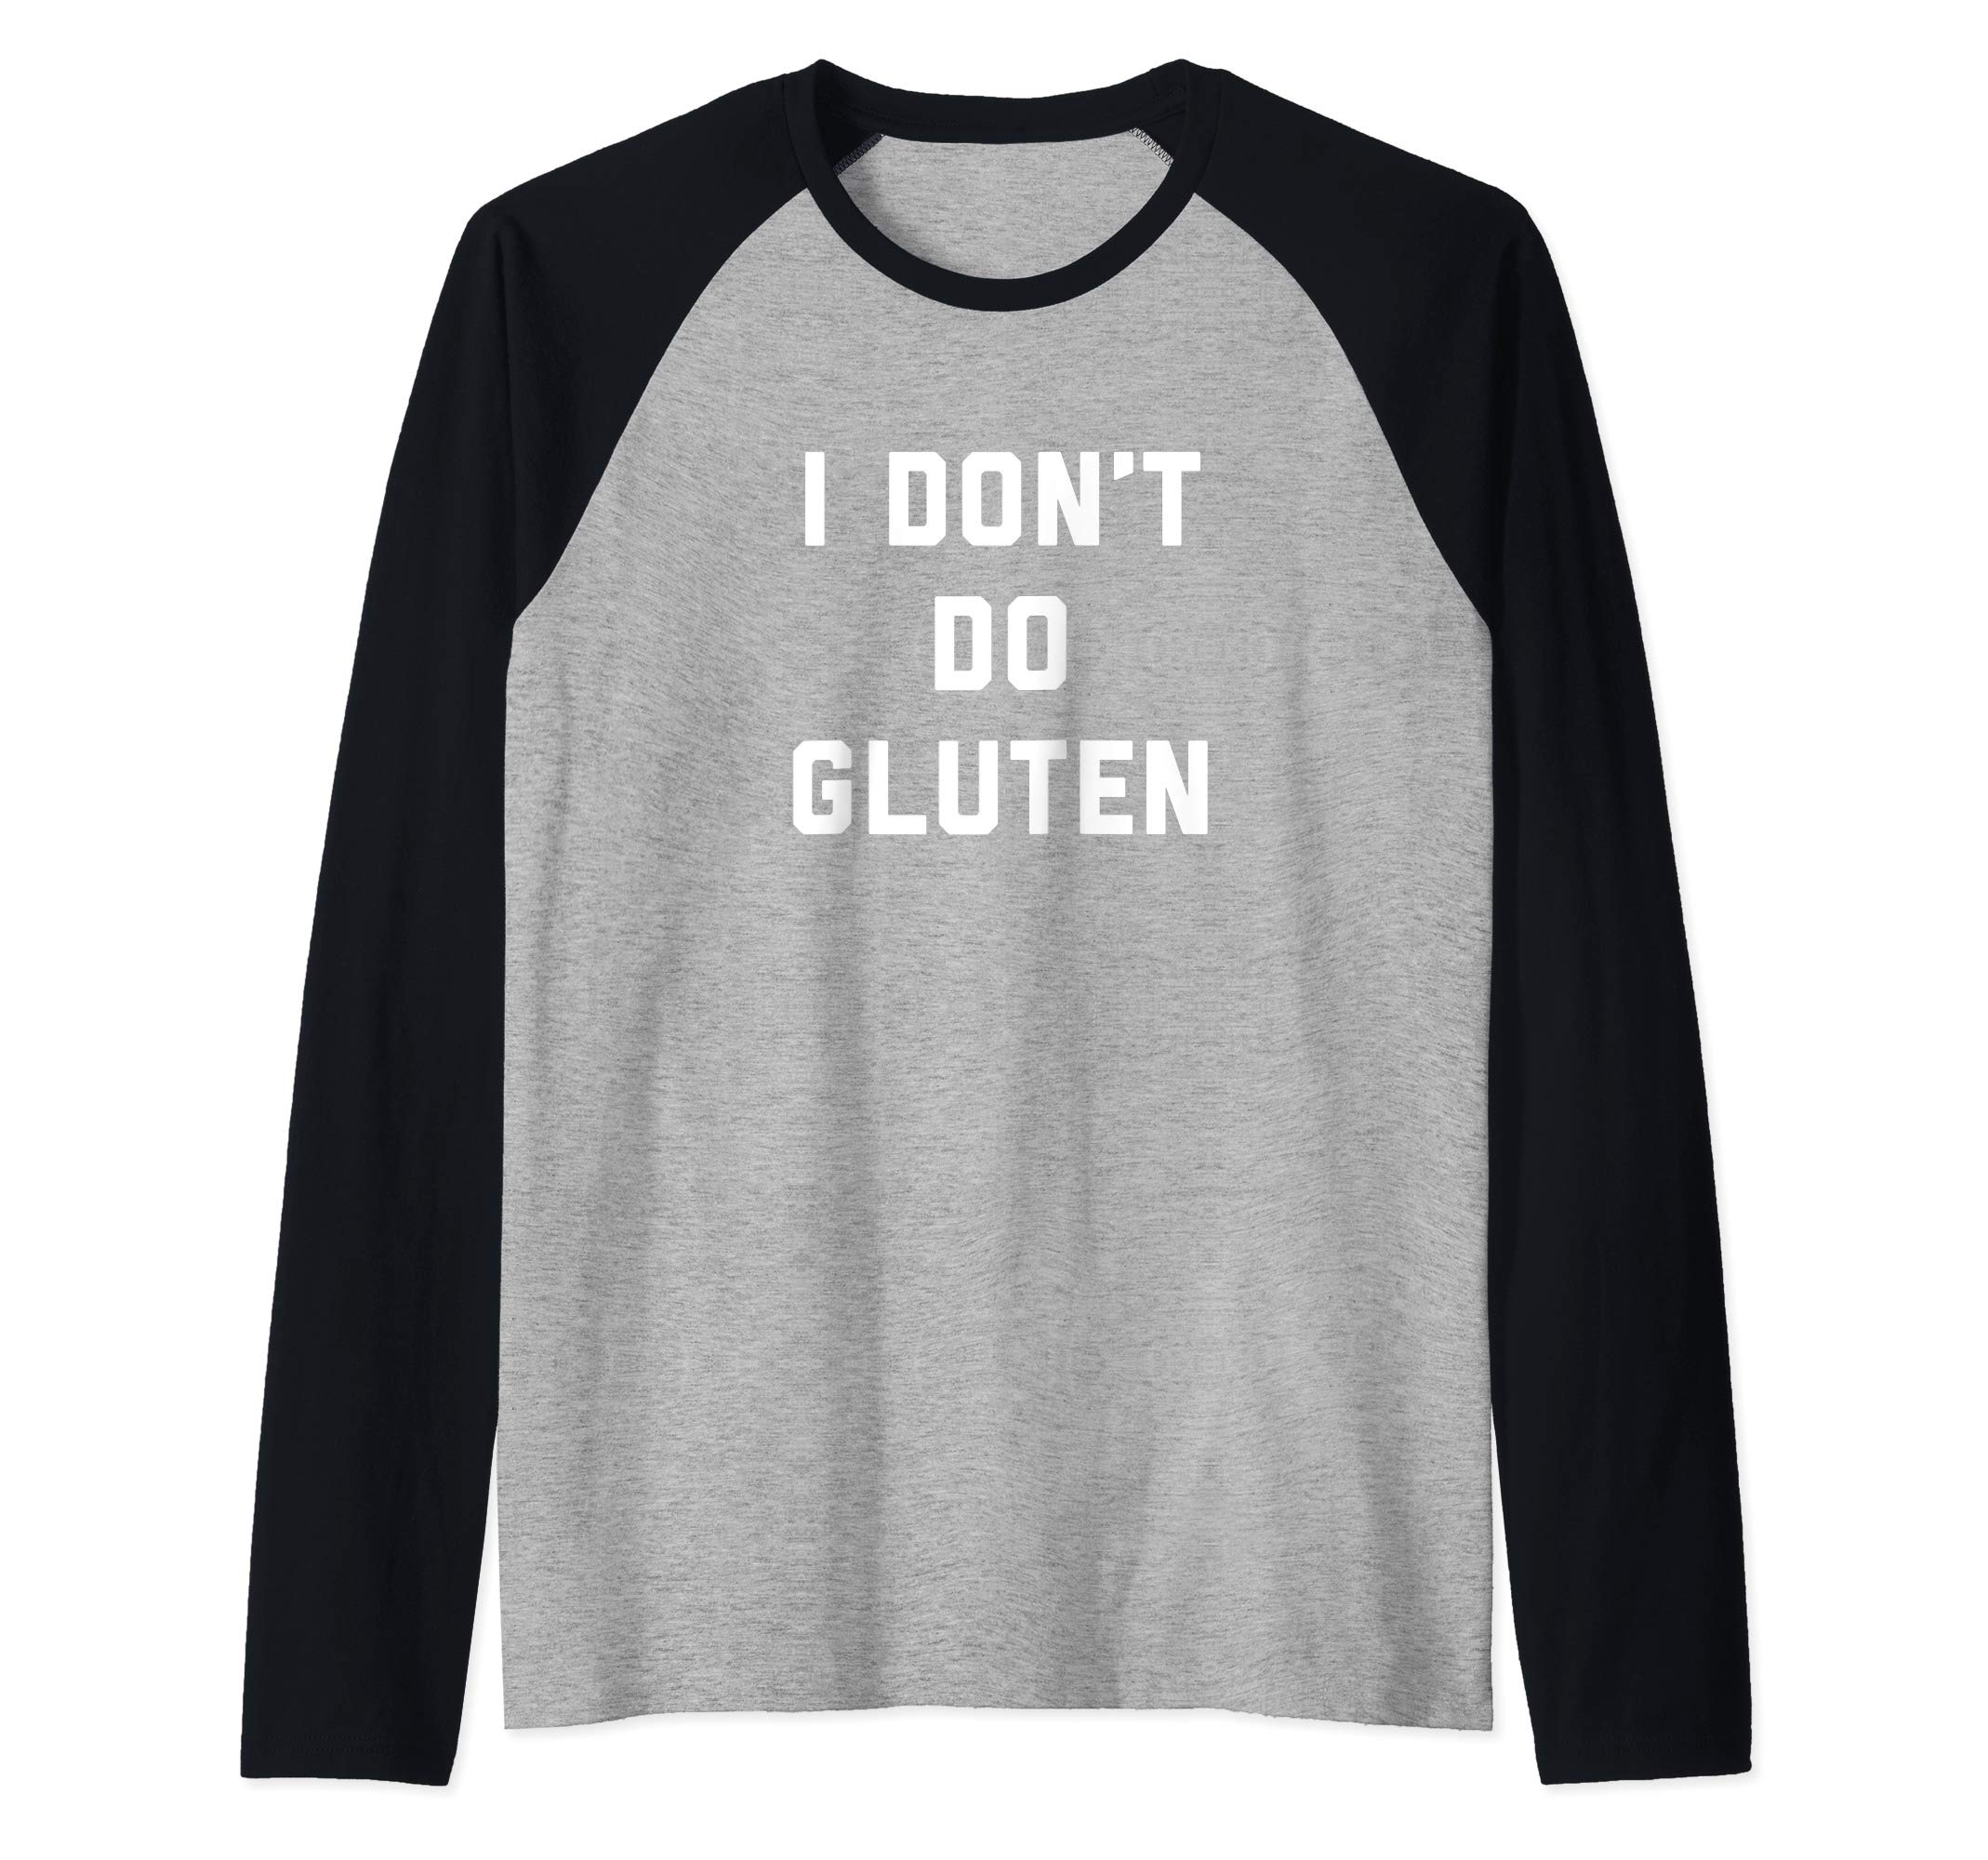 I Don't Do Gluten Funny Gluten Free Diet Gifts Raglan Baseball Tee by Funny and Comical Creative Gift Ideas